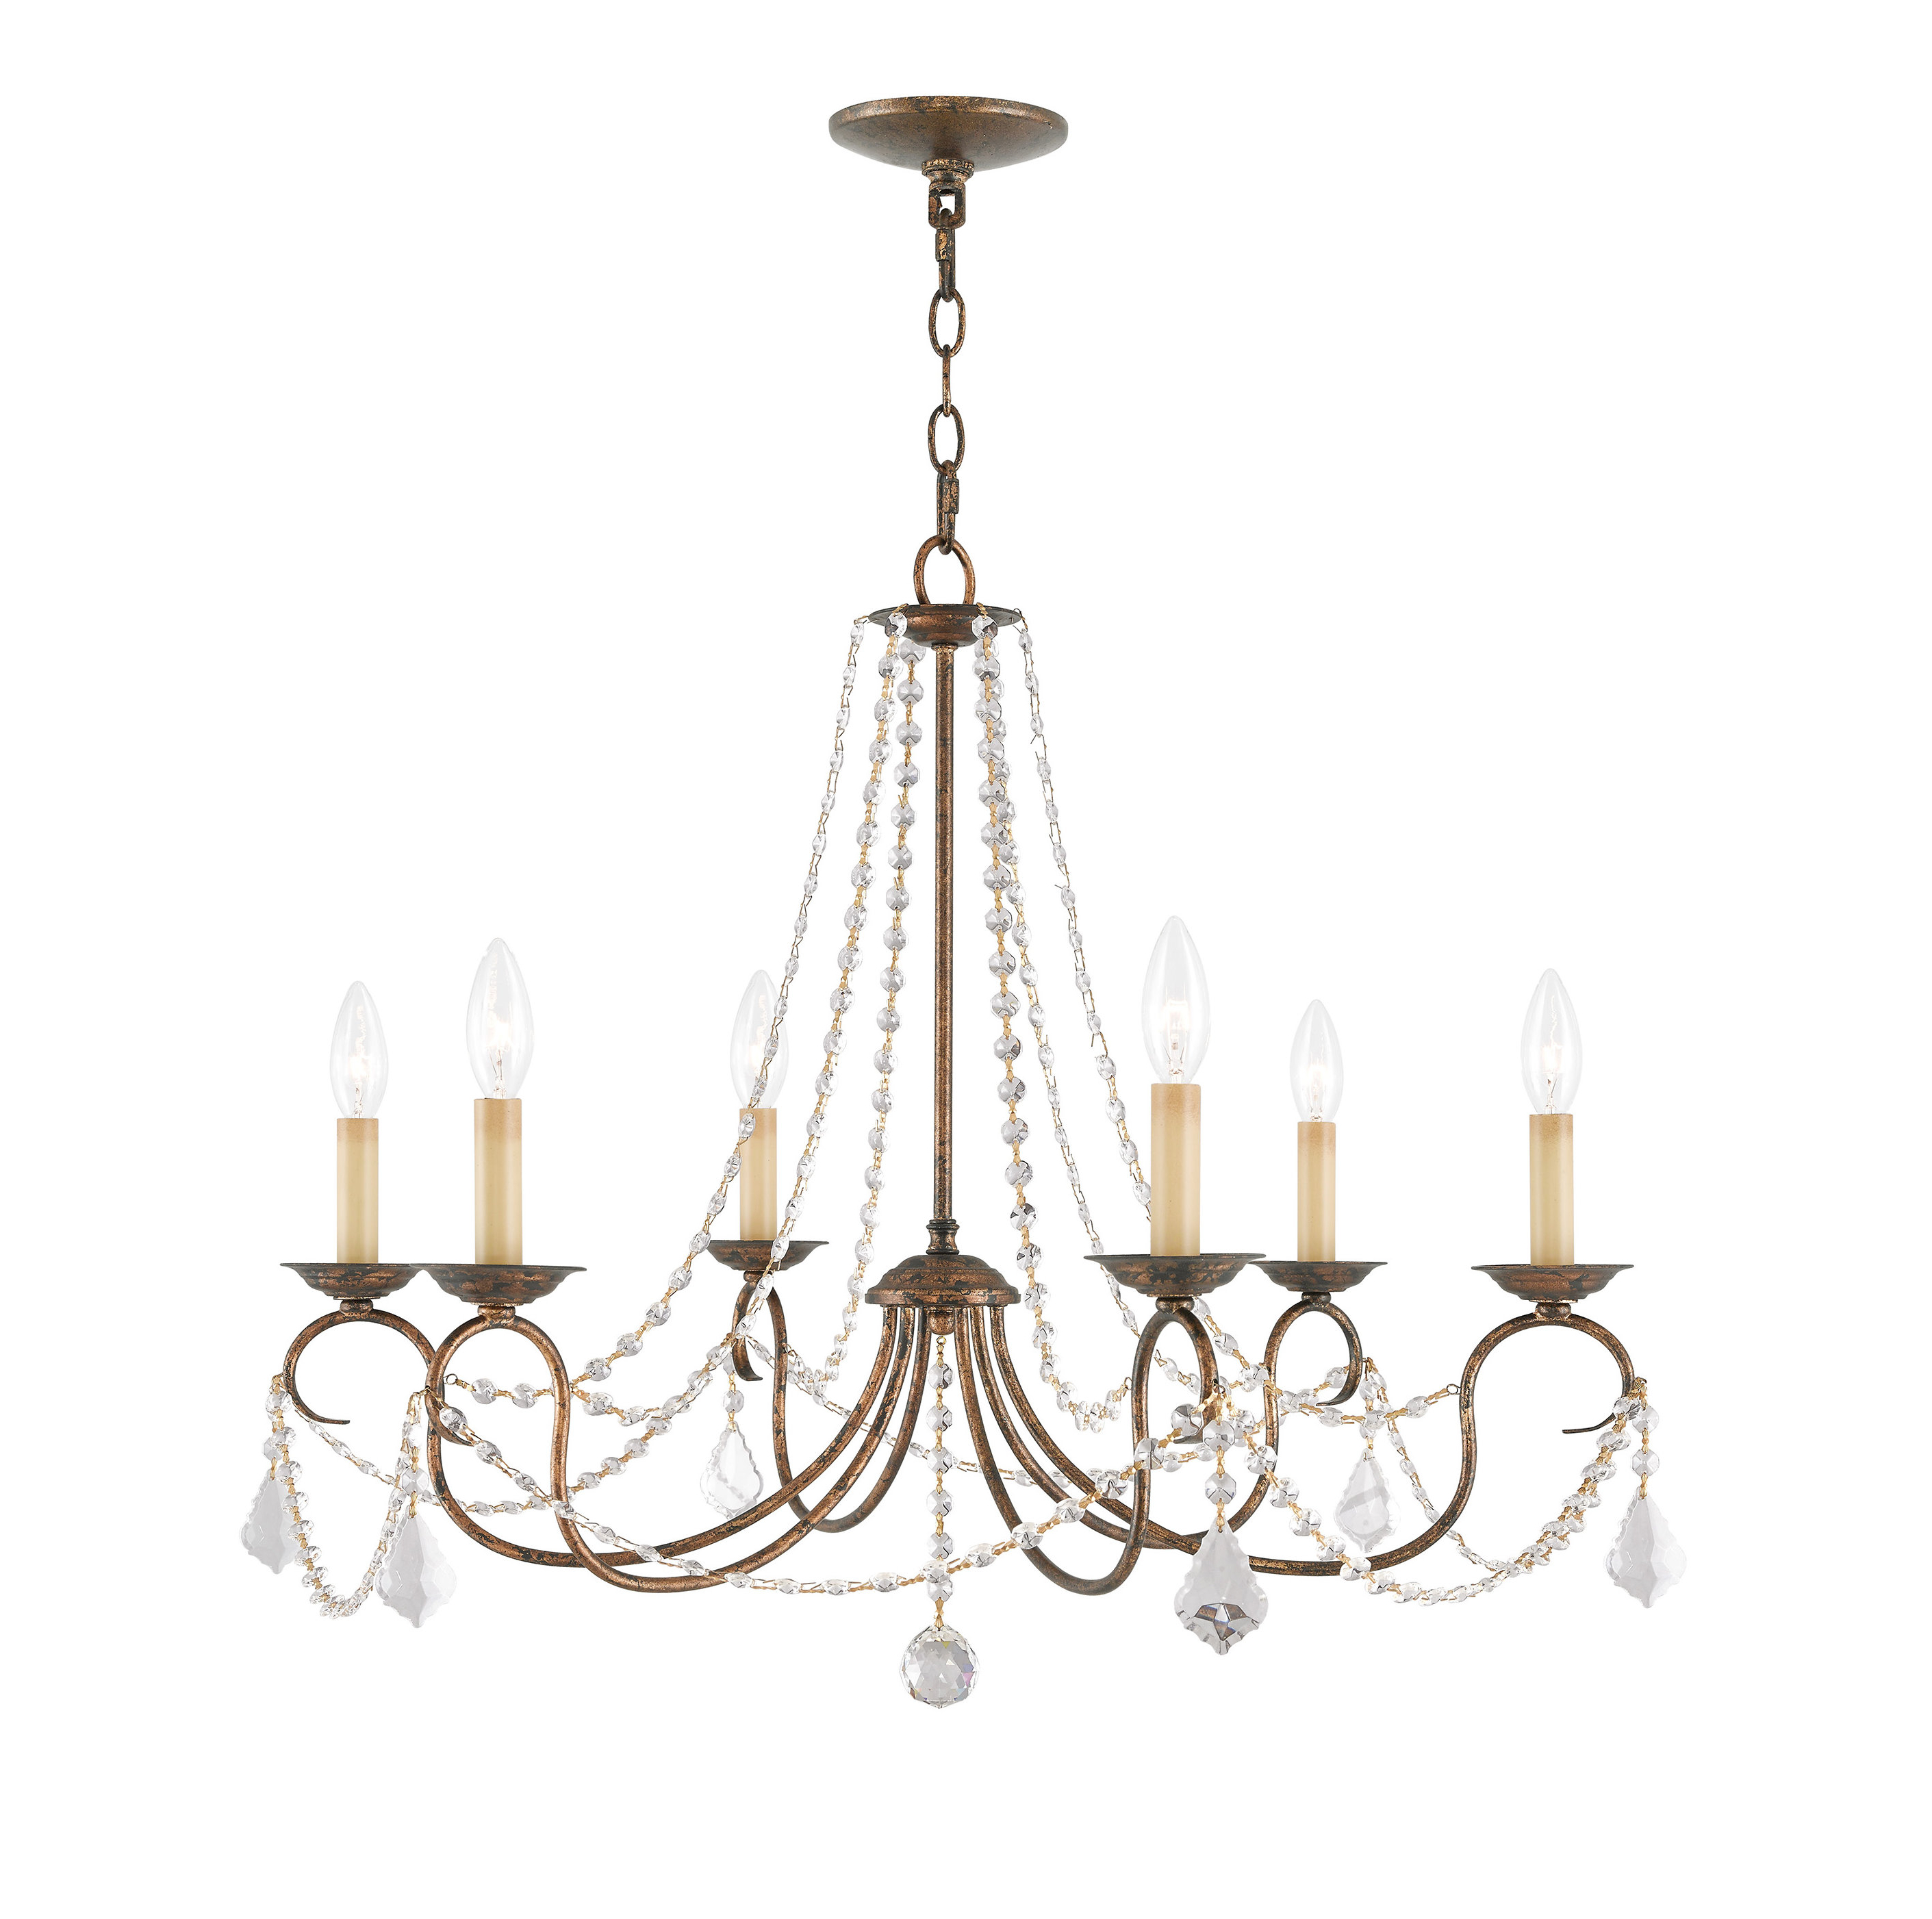 Well Known Devana 6 Light Candle Style Chandelier With Diaz 6 Light Candle Style Chandeliers (View 10 of 20)